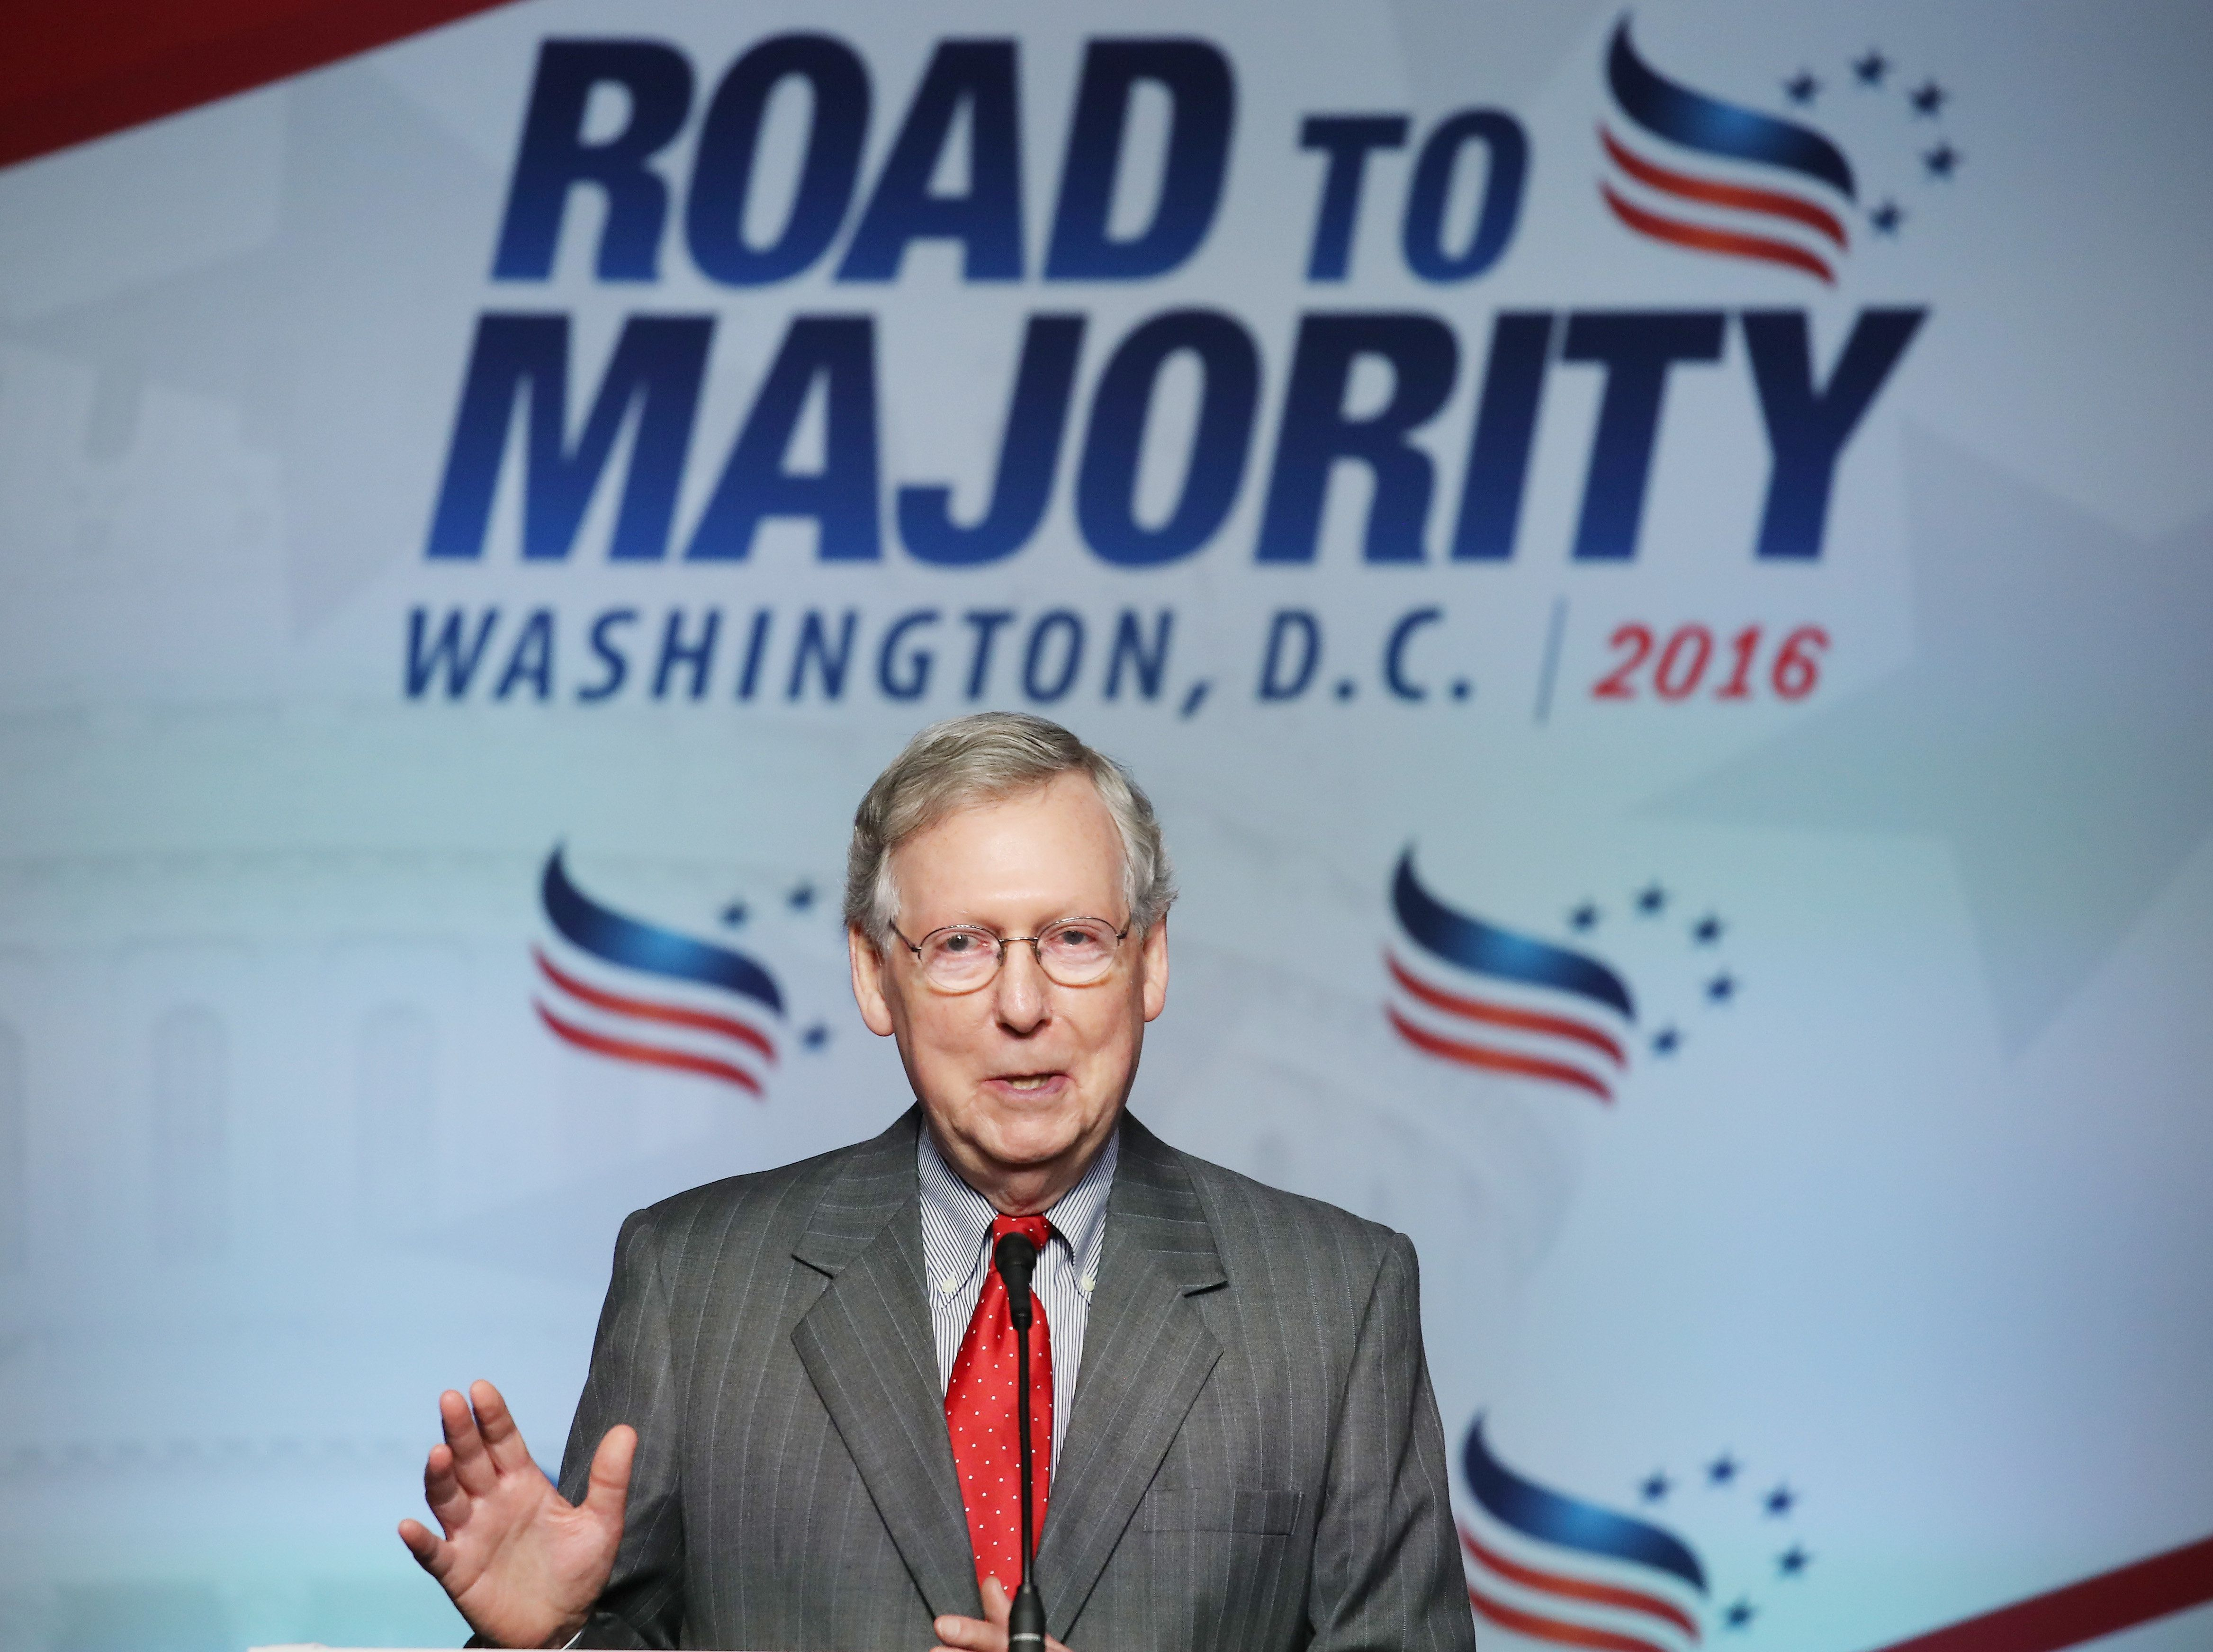 WASHINGTON, DC - JUNE 10:  Senate Majority Leader Mitch McConnell (R-KY), speaks during the Faith and Freedom Forum Coalition's 'Road to Majority' conference on June 10, 2016 in Washington, DC. Donald Trump is also scheduled to speak at the conference. (Photo by Mark Wilson/Getty Images)